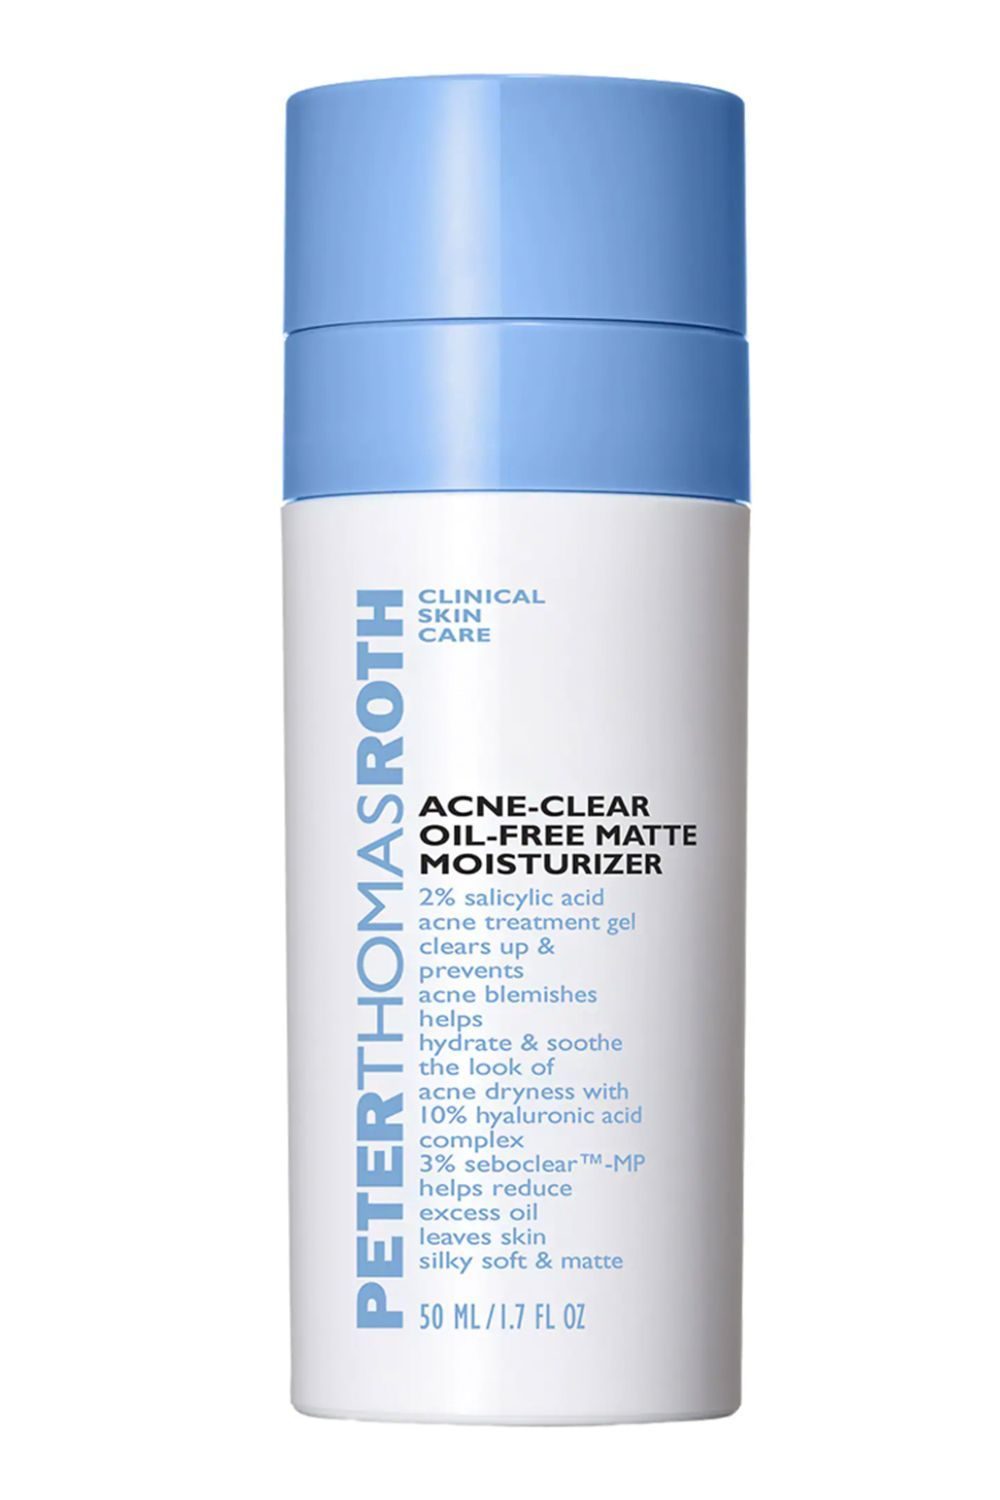 20 Best Moisturizers For Oily And Acne Prone Skin Of 2020